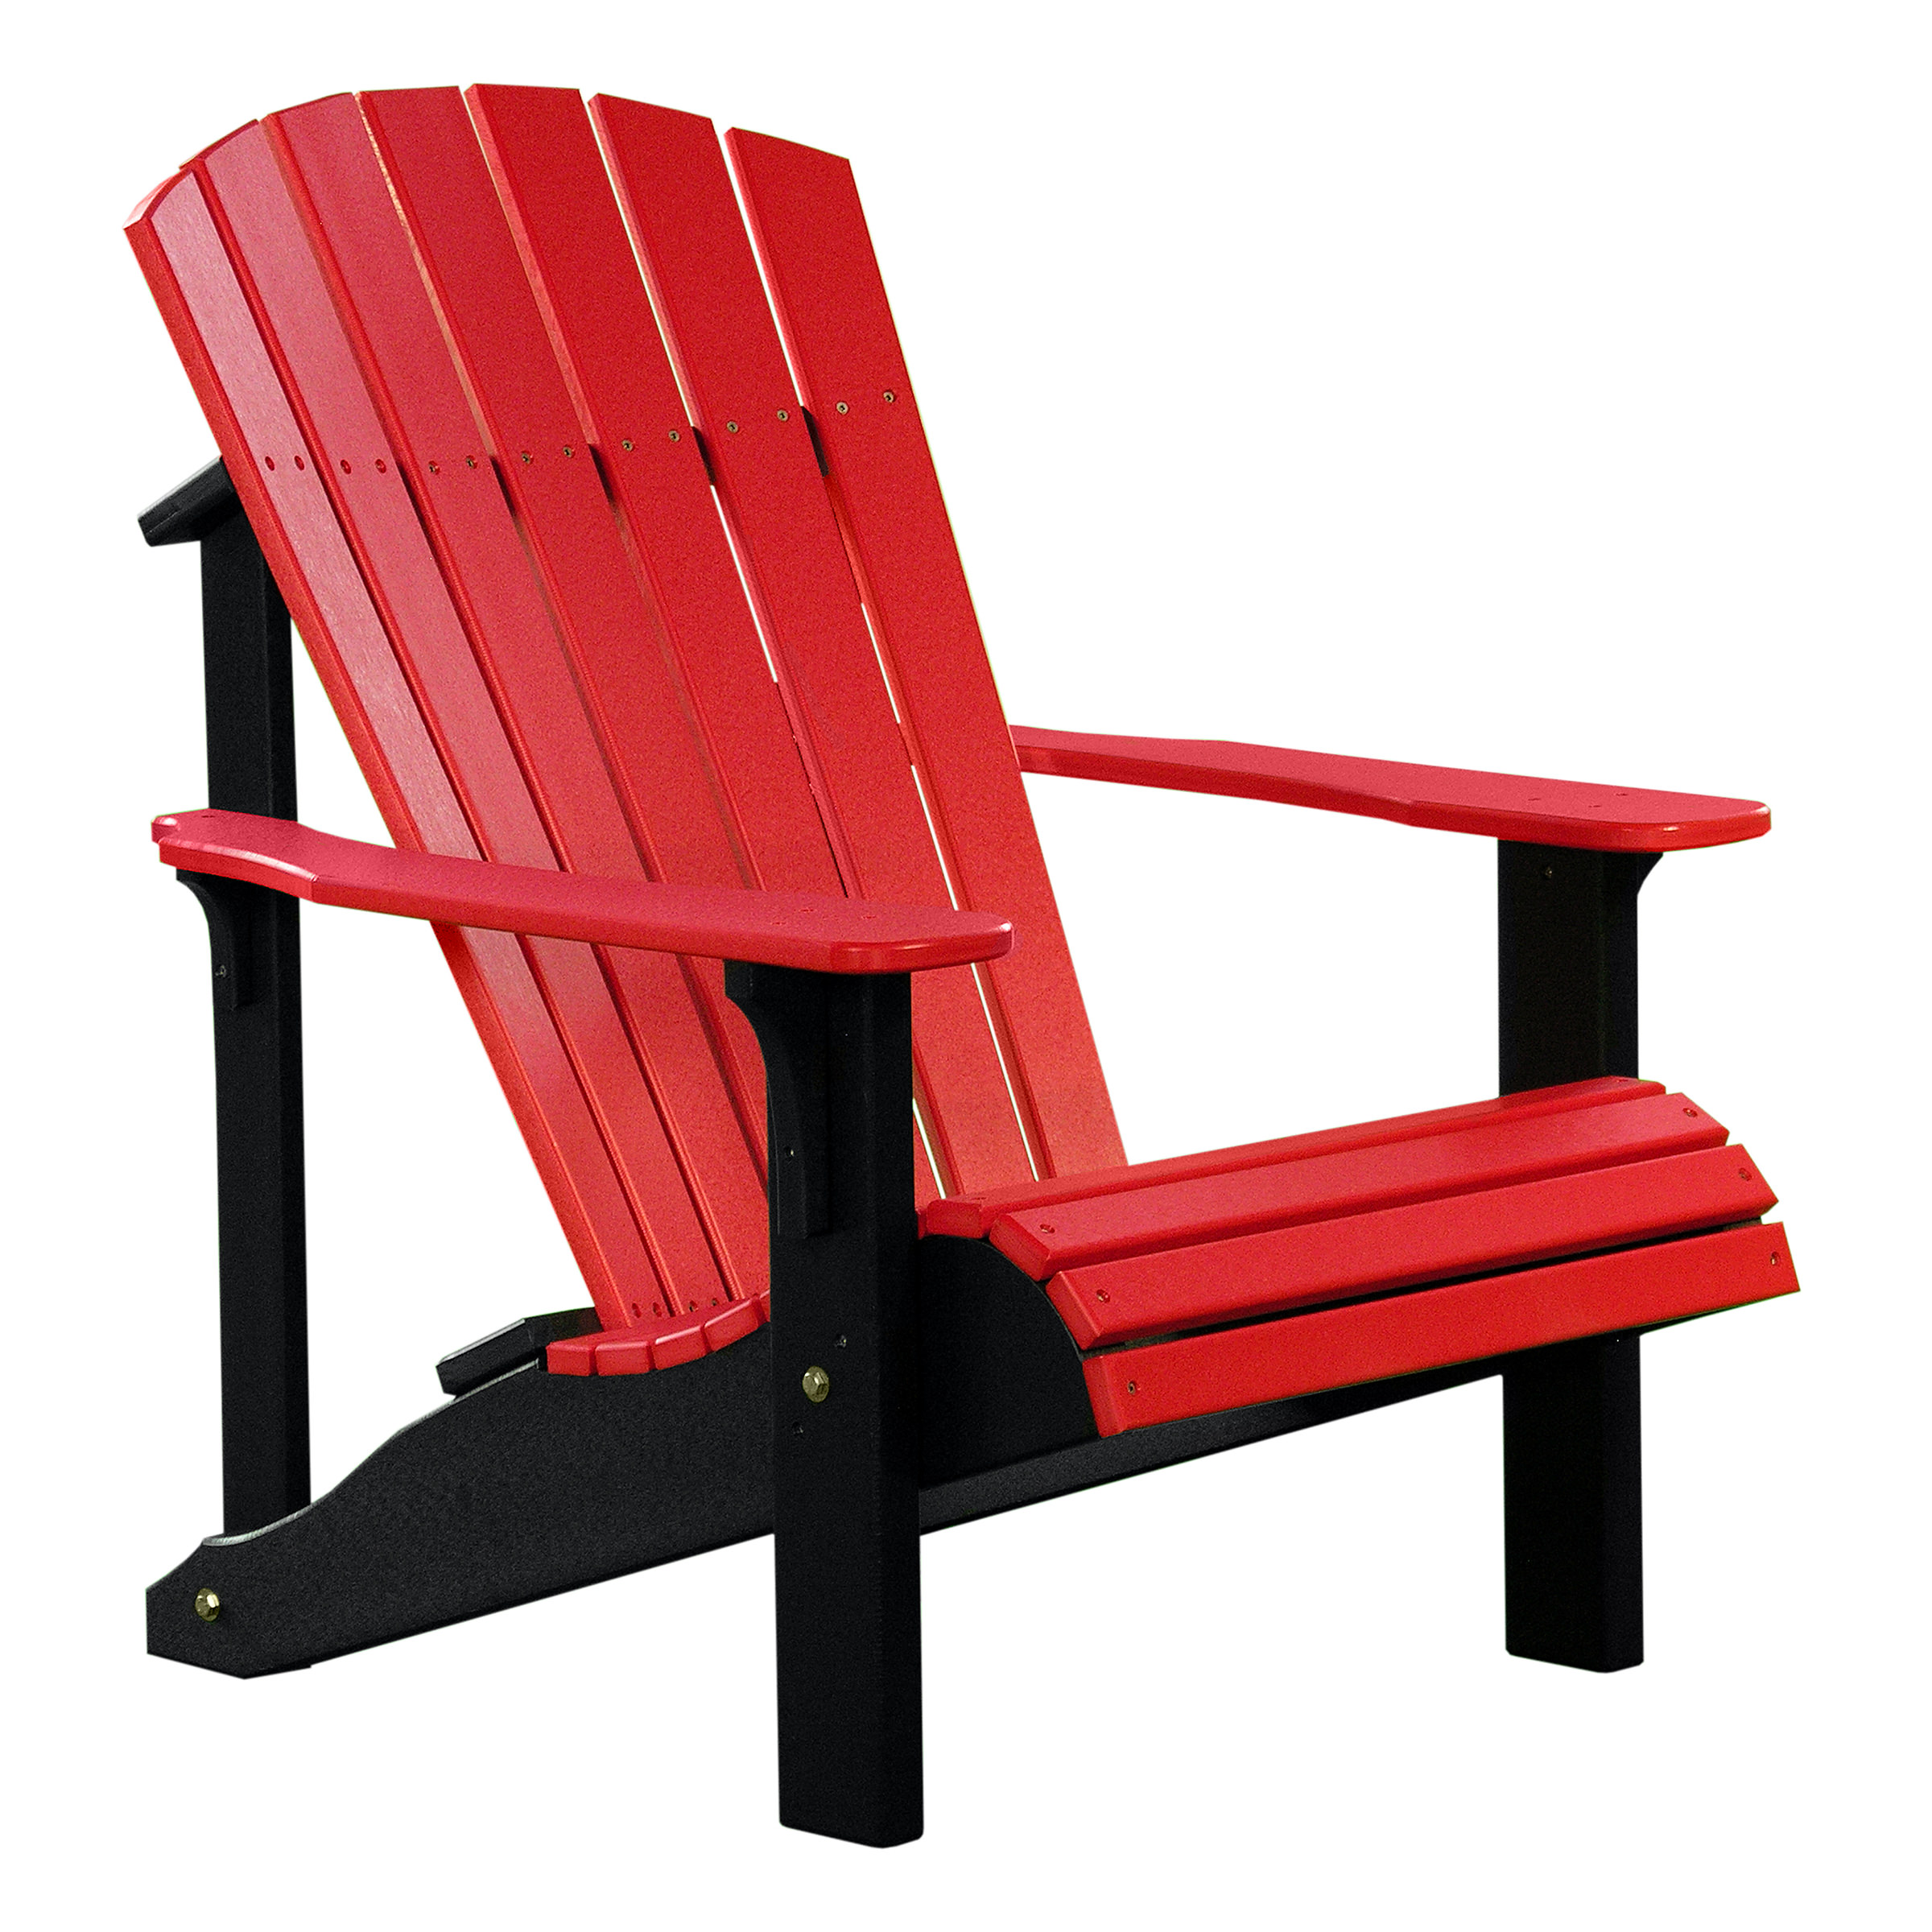 lifetime adirondack chairs redman power chair reviews awesome rtty1